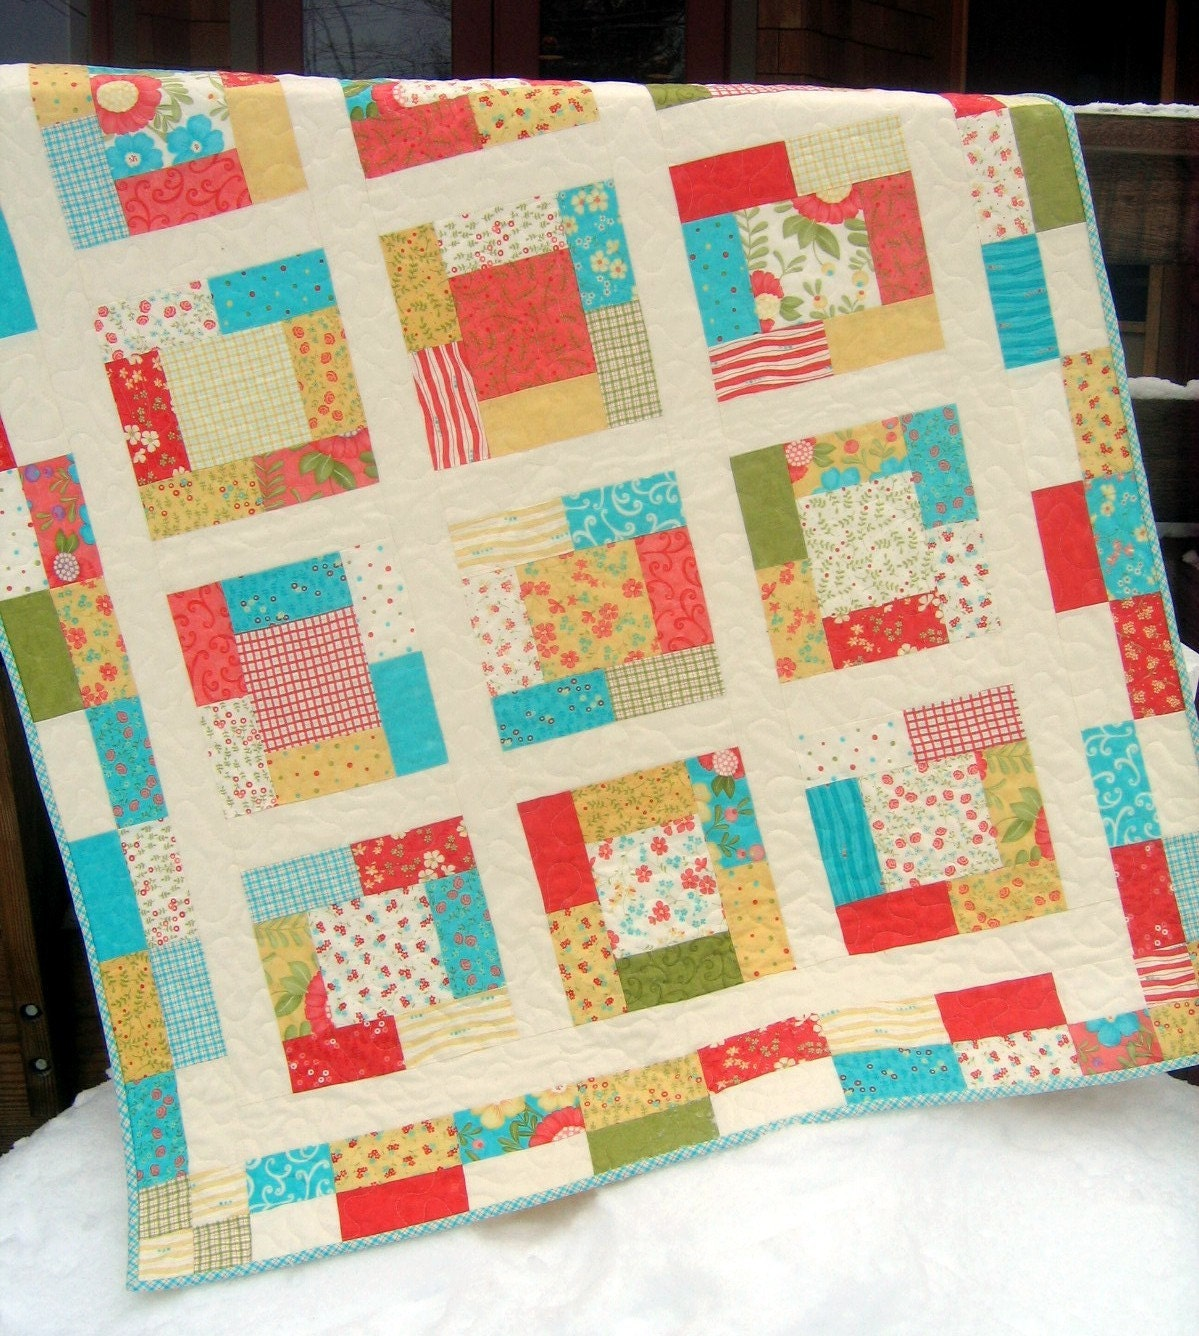 Quilt Patterns From Squares : QUILT PATTERN Charm Squares or Fat Quarters easy quick eBay